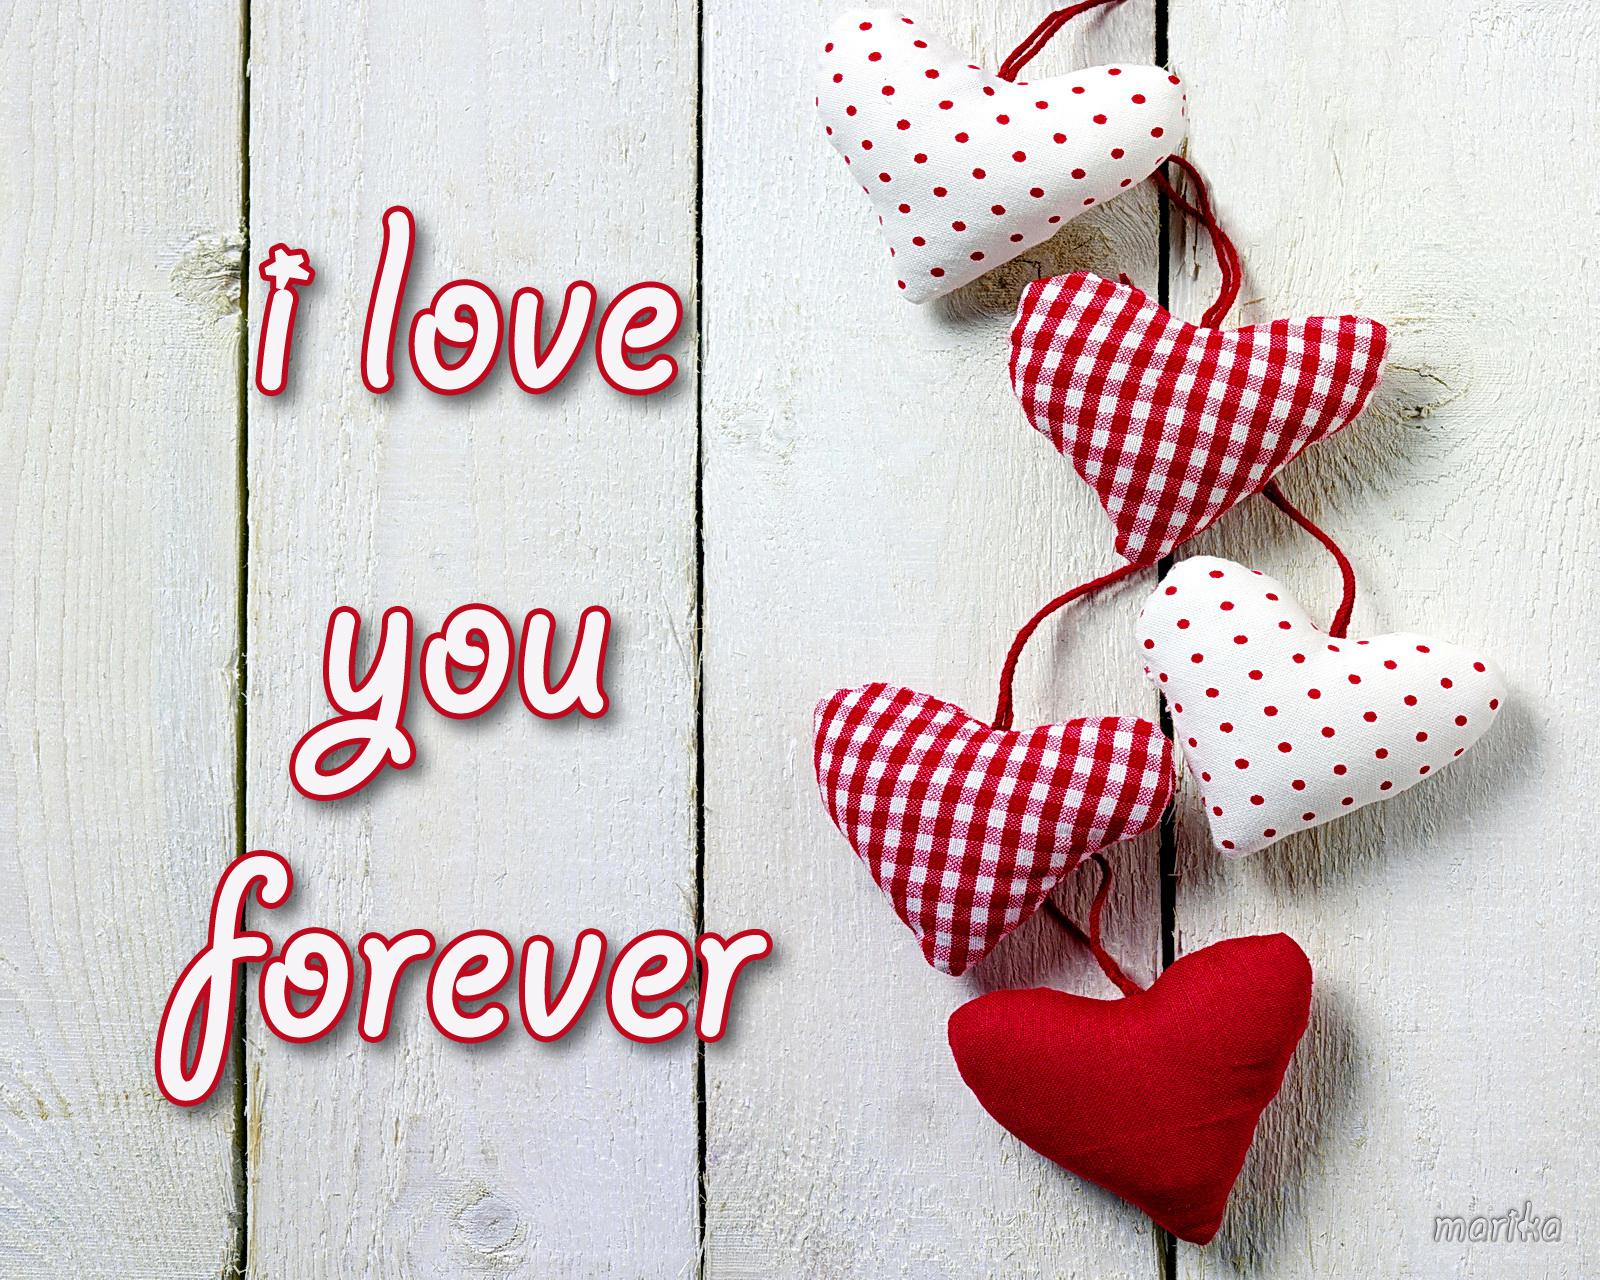 Wallpaper I Love You Hd : I Love You Wallpapers HD A15 - HD Desktop Wallpapers 4k HD